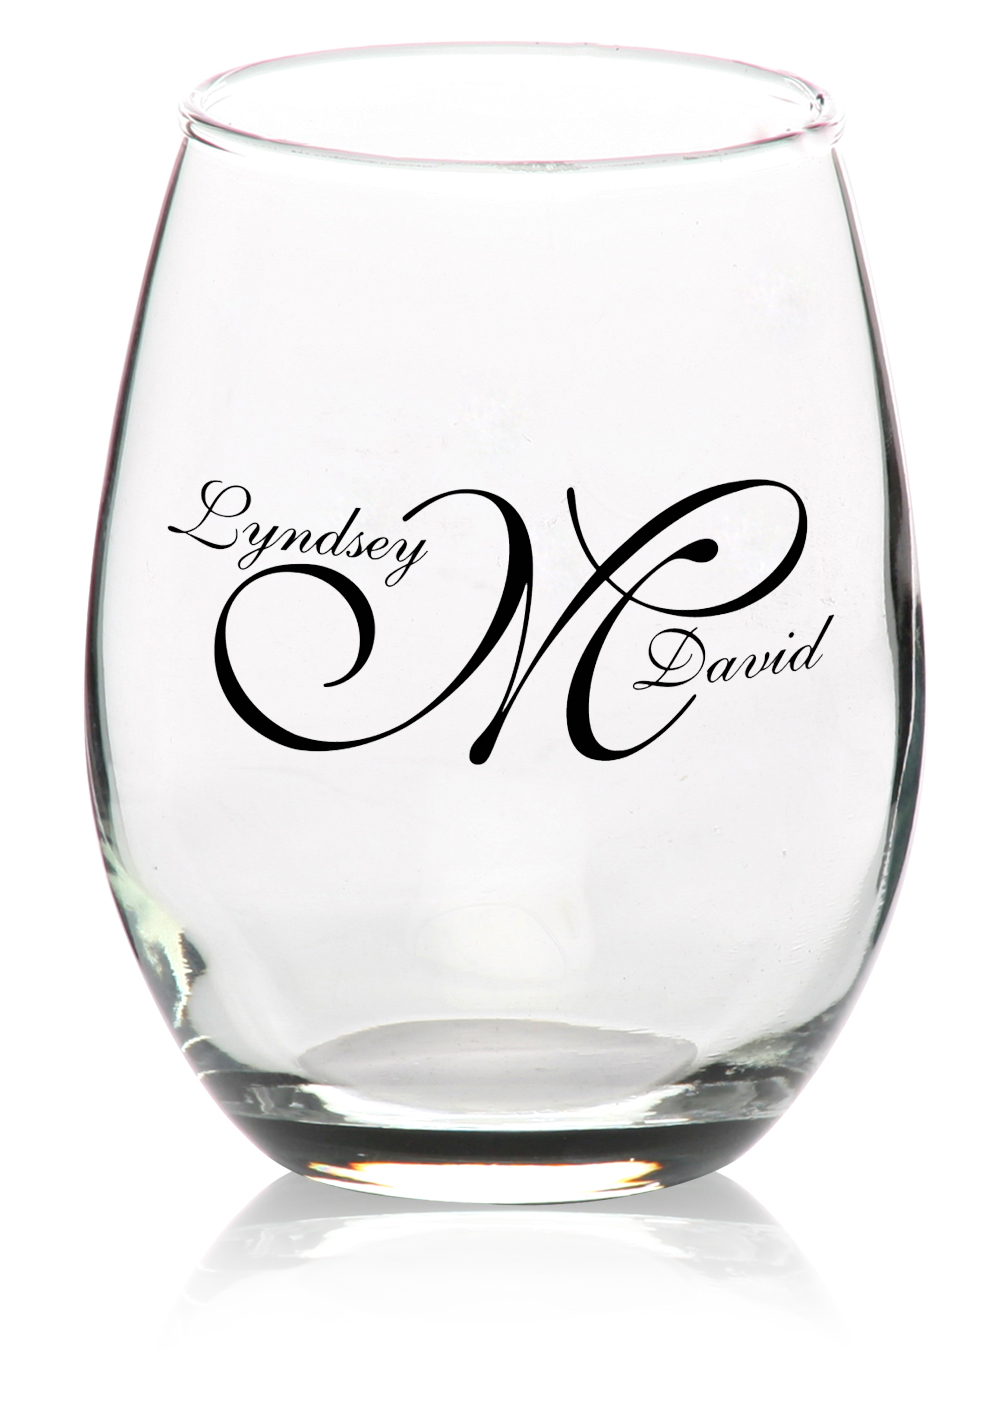 Custom Stemless Wine GlassesPersonalized Wine Glasses